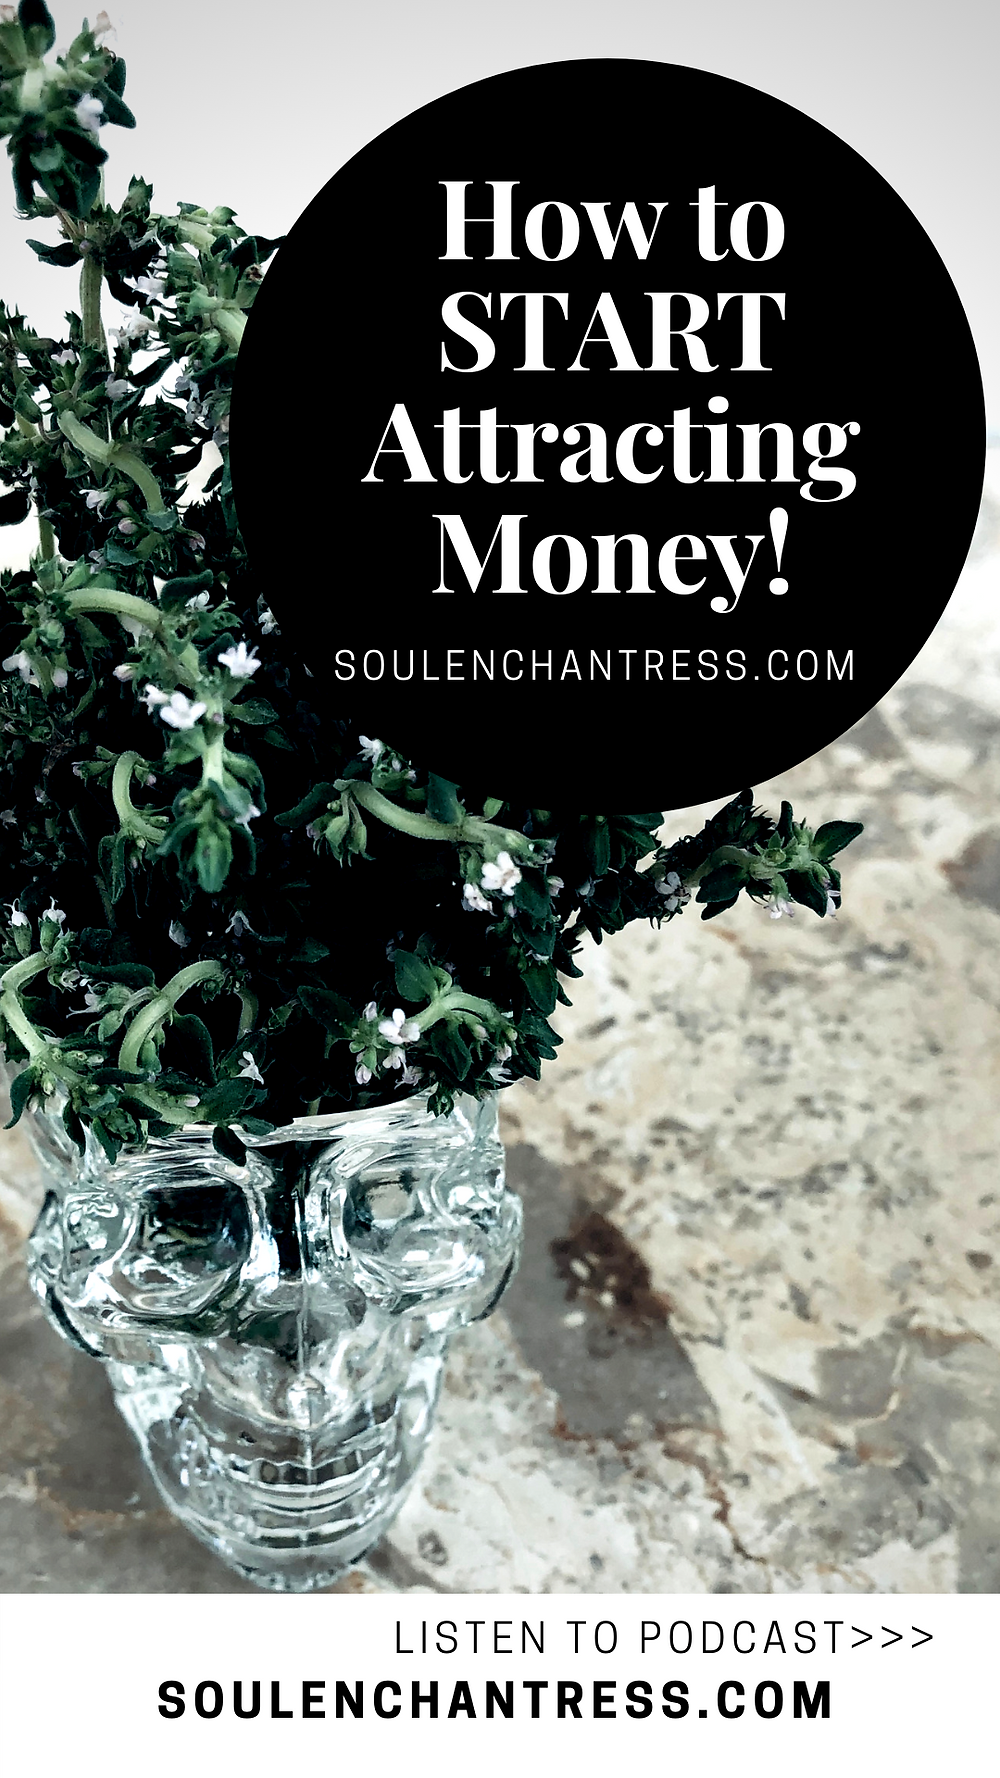 how to attract money, soul enchantress